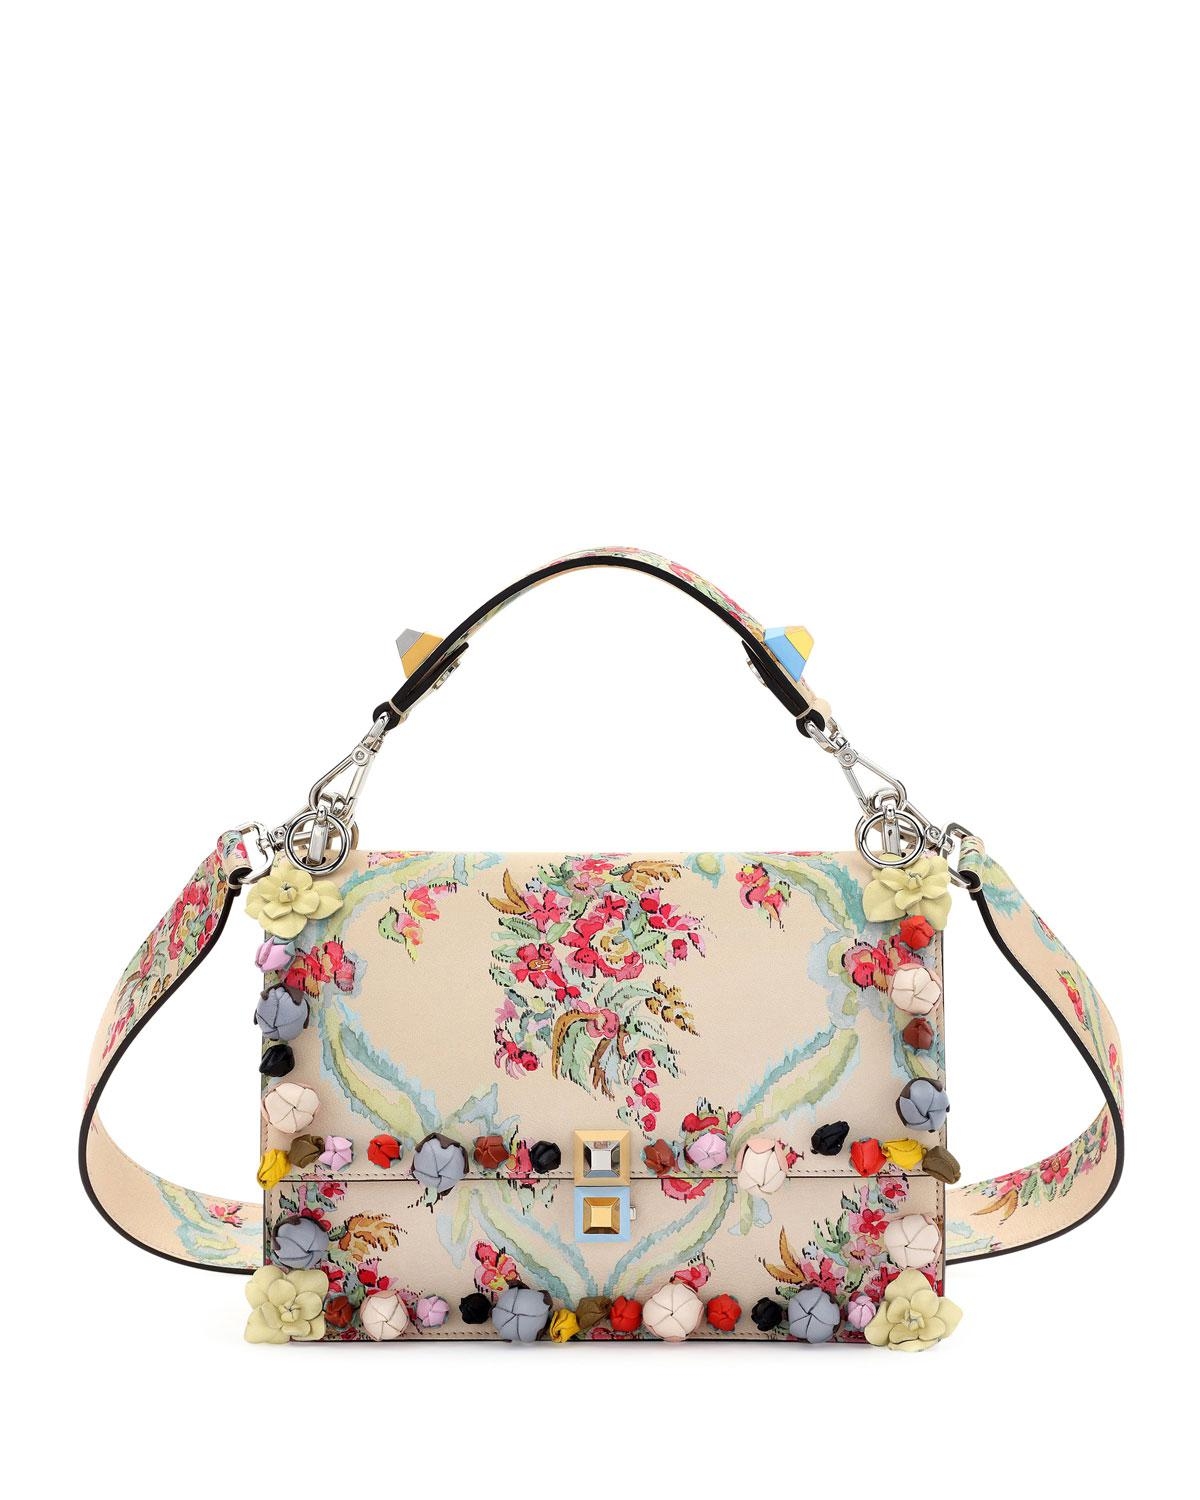 5dc876d4b611 Lyst - Fendi Kan I Floral Leather Shoulder Bag - Save 6%